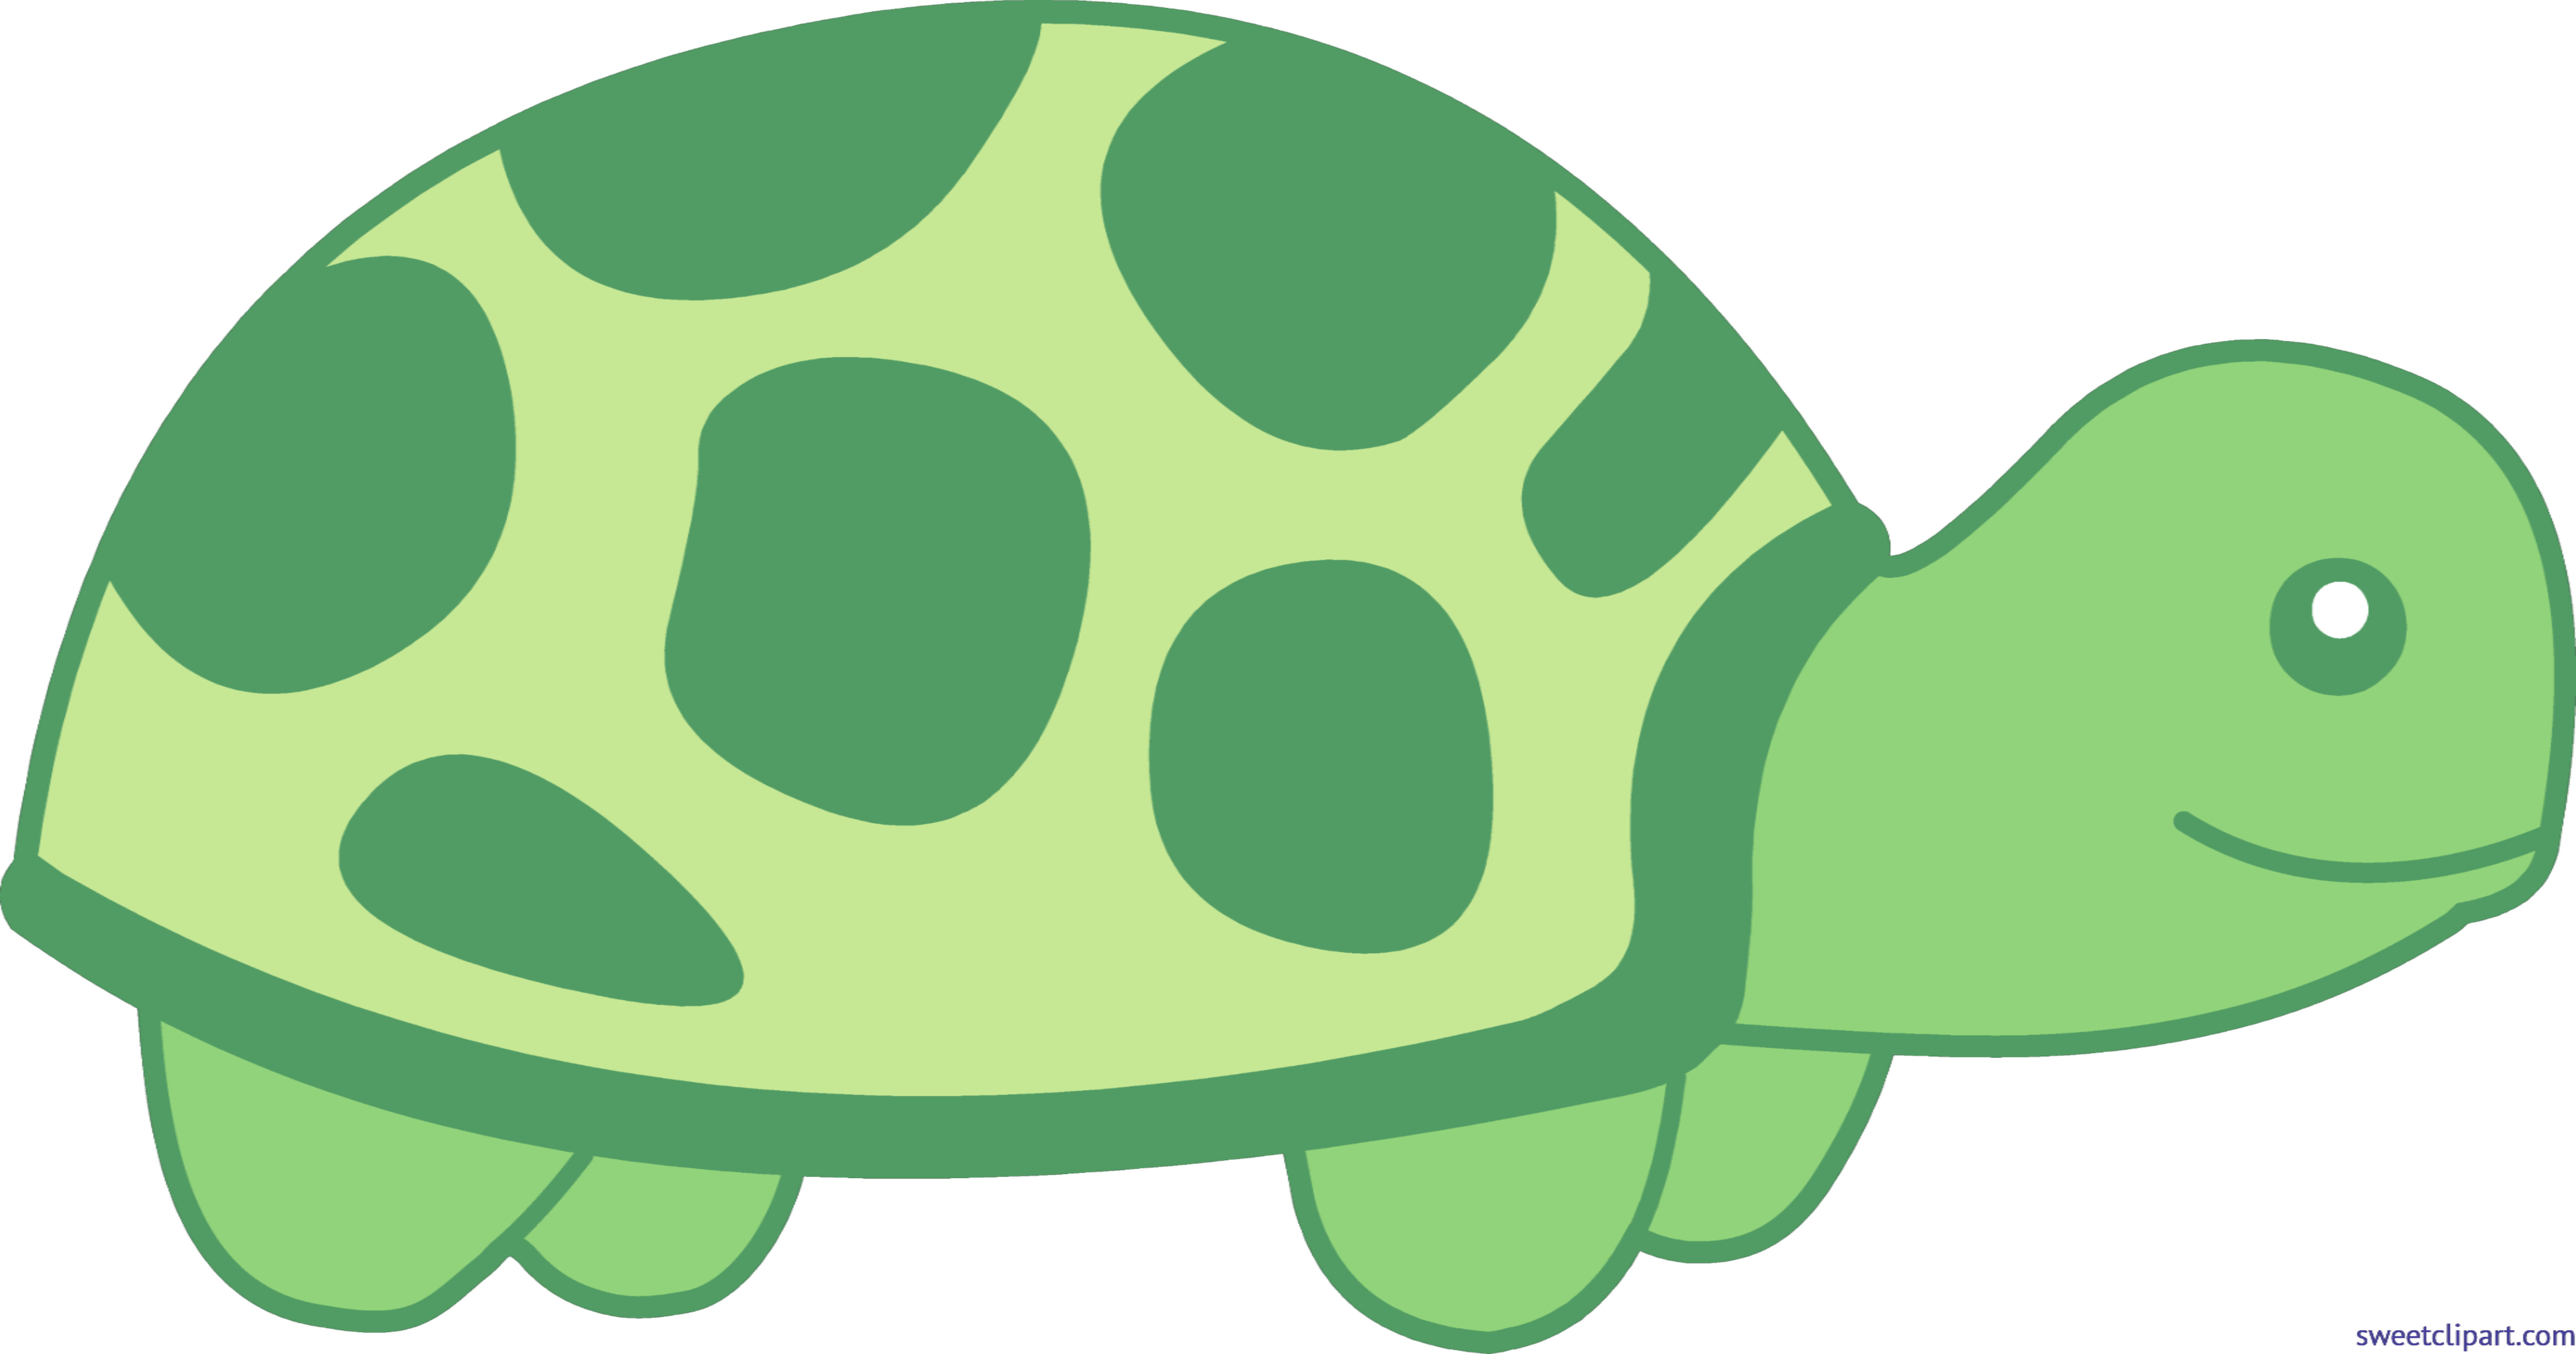 Turtle cat clipart clip royalty free library Cute Sea Turtle Clipart at GetDrawings.com | Free for personal use ... clip royalty free library